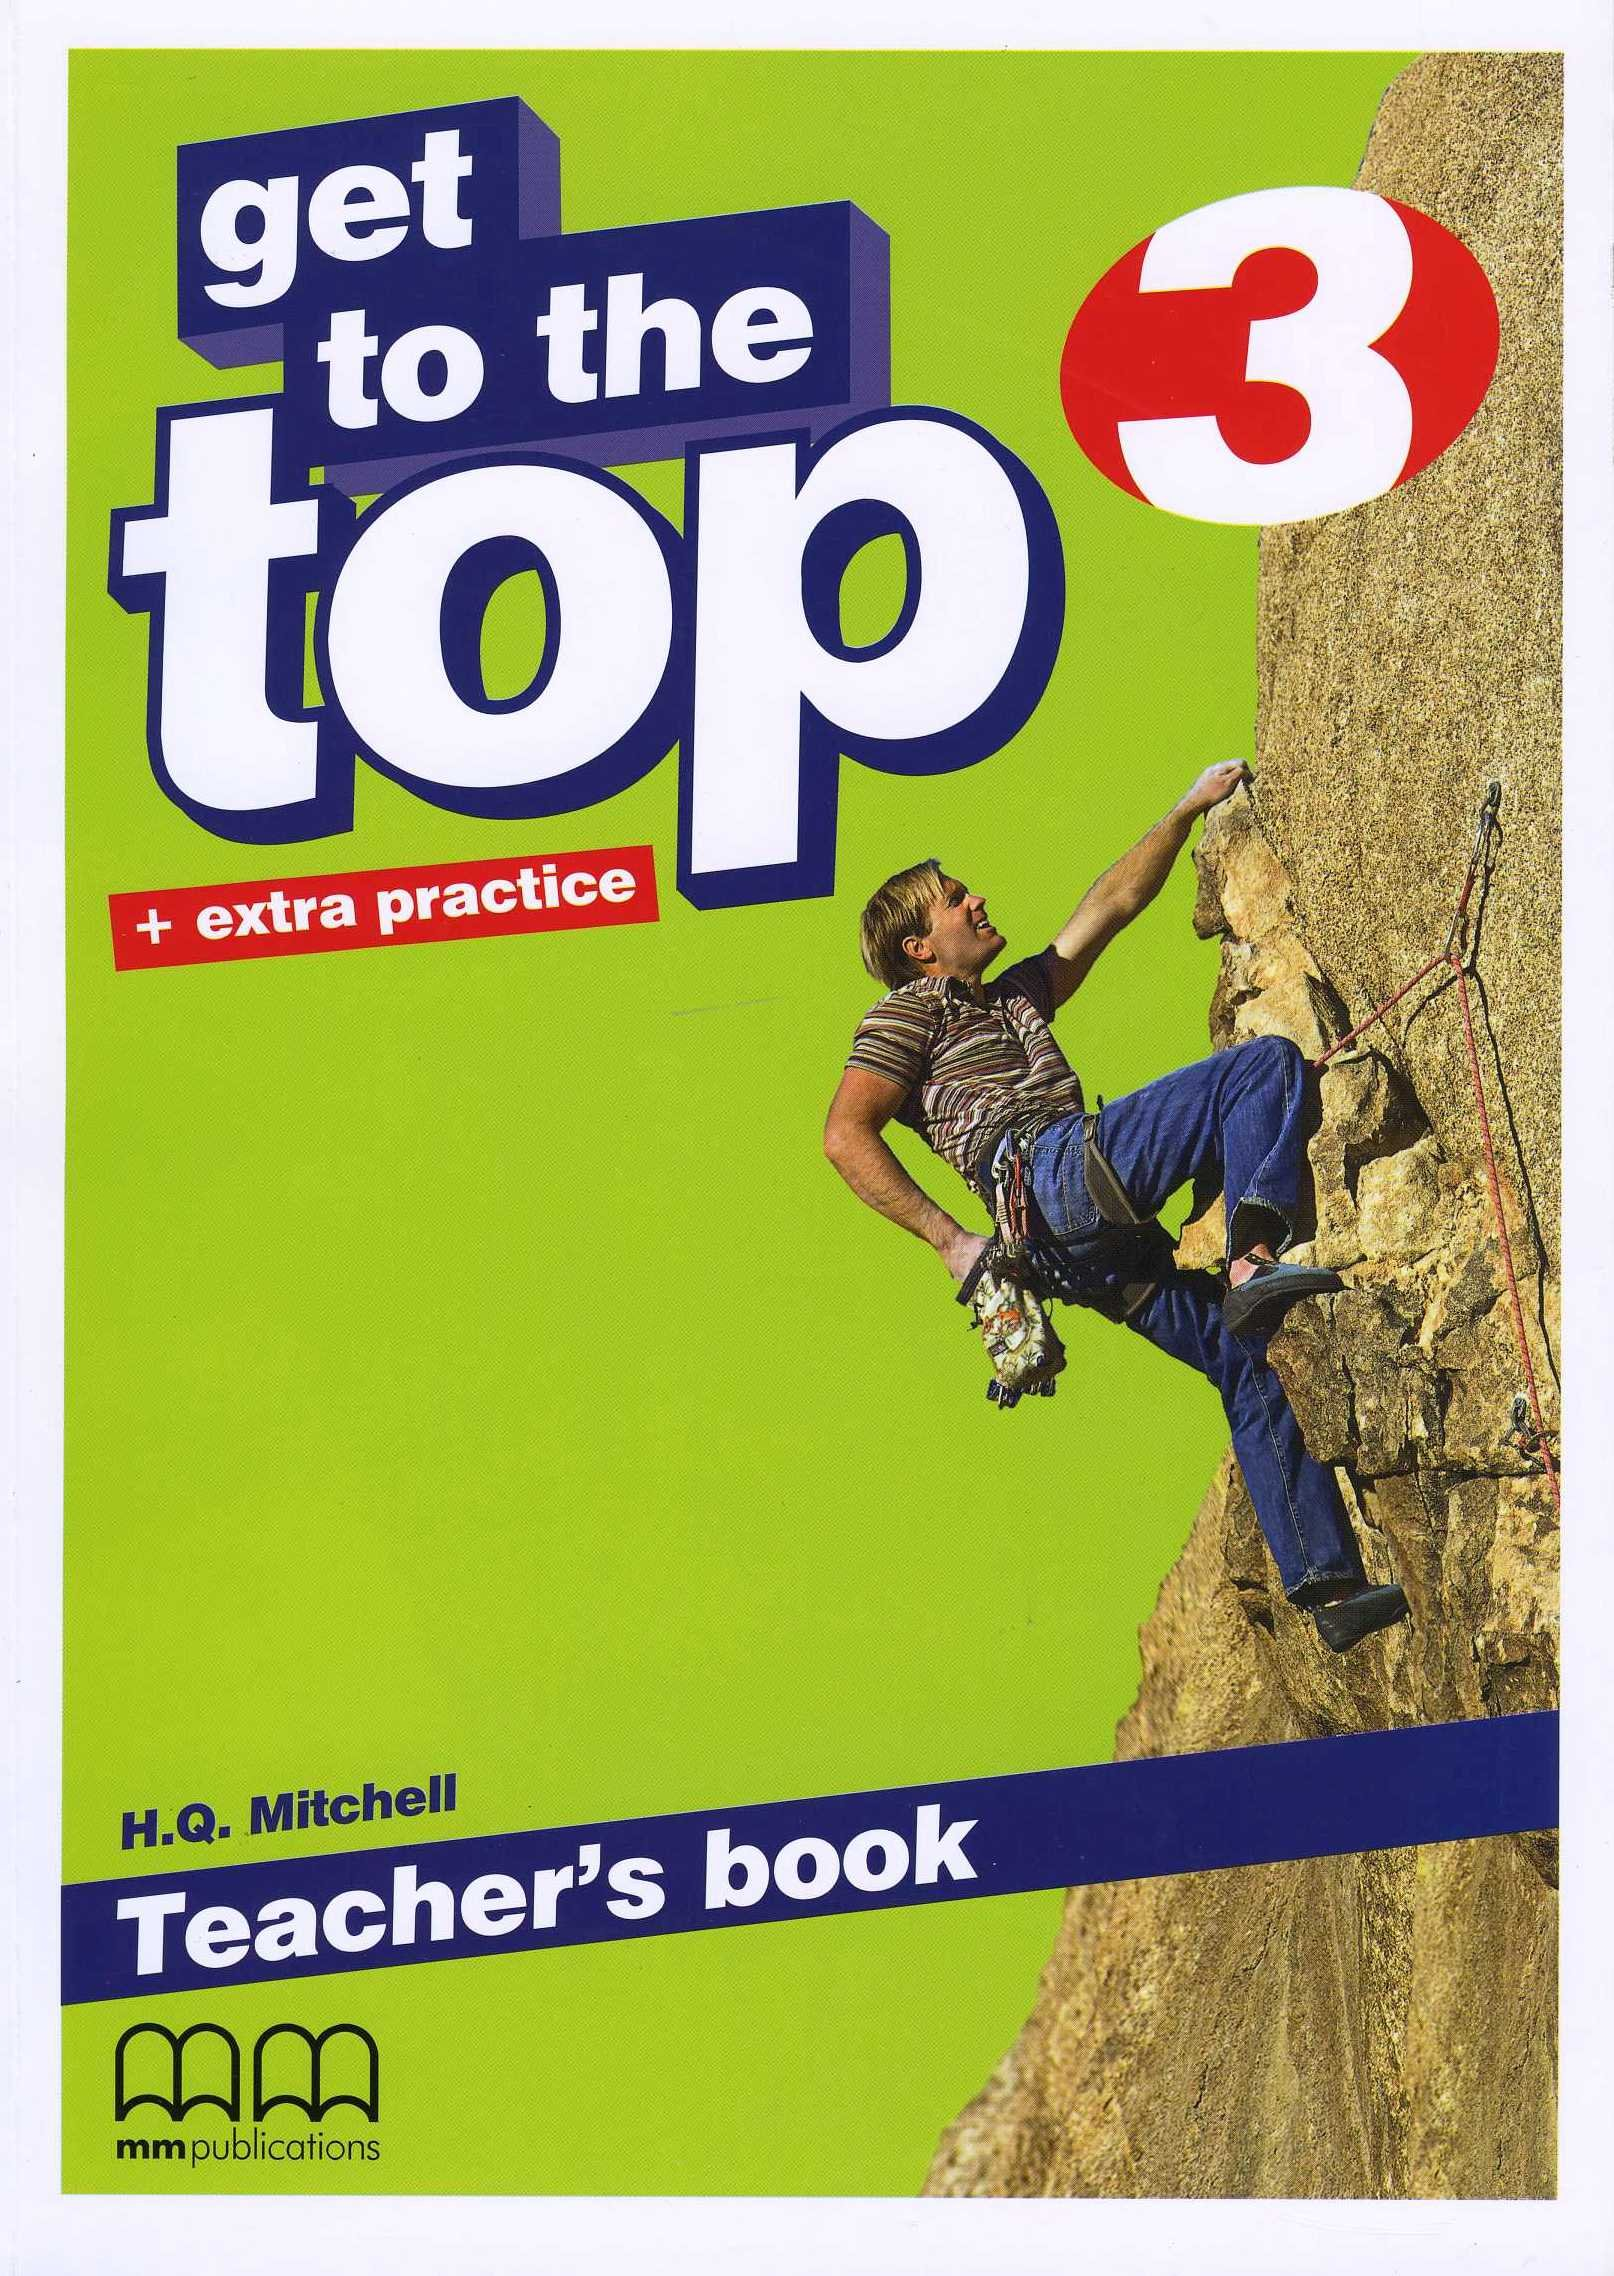 Get to the Top + extra practice 3 Teacher's Book